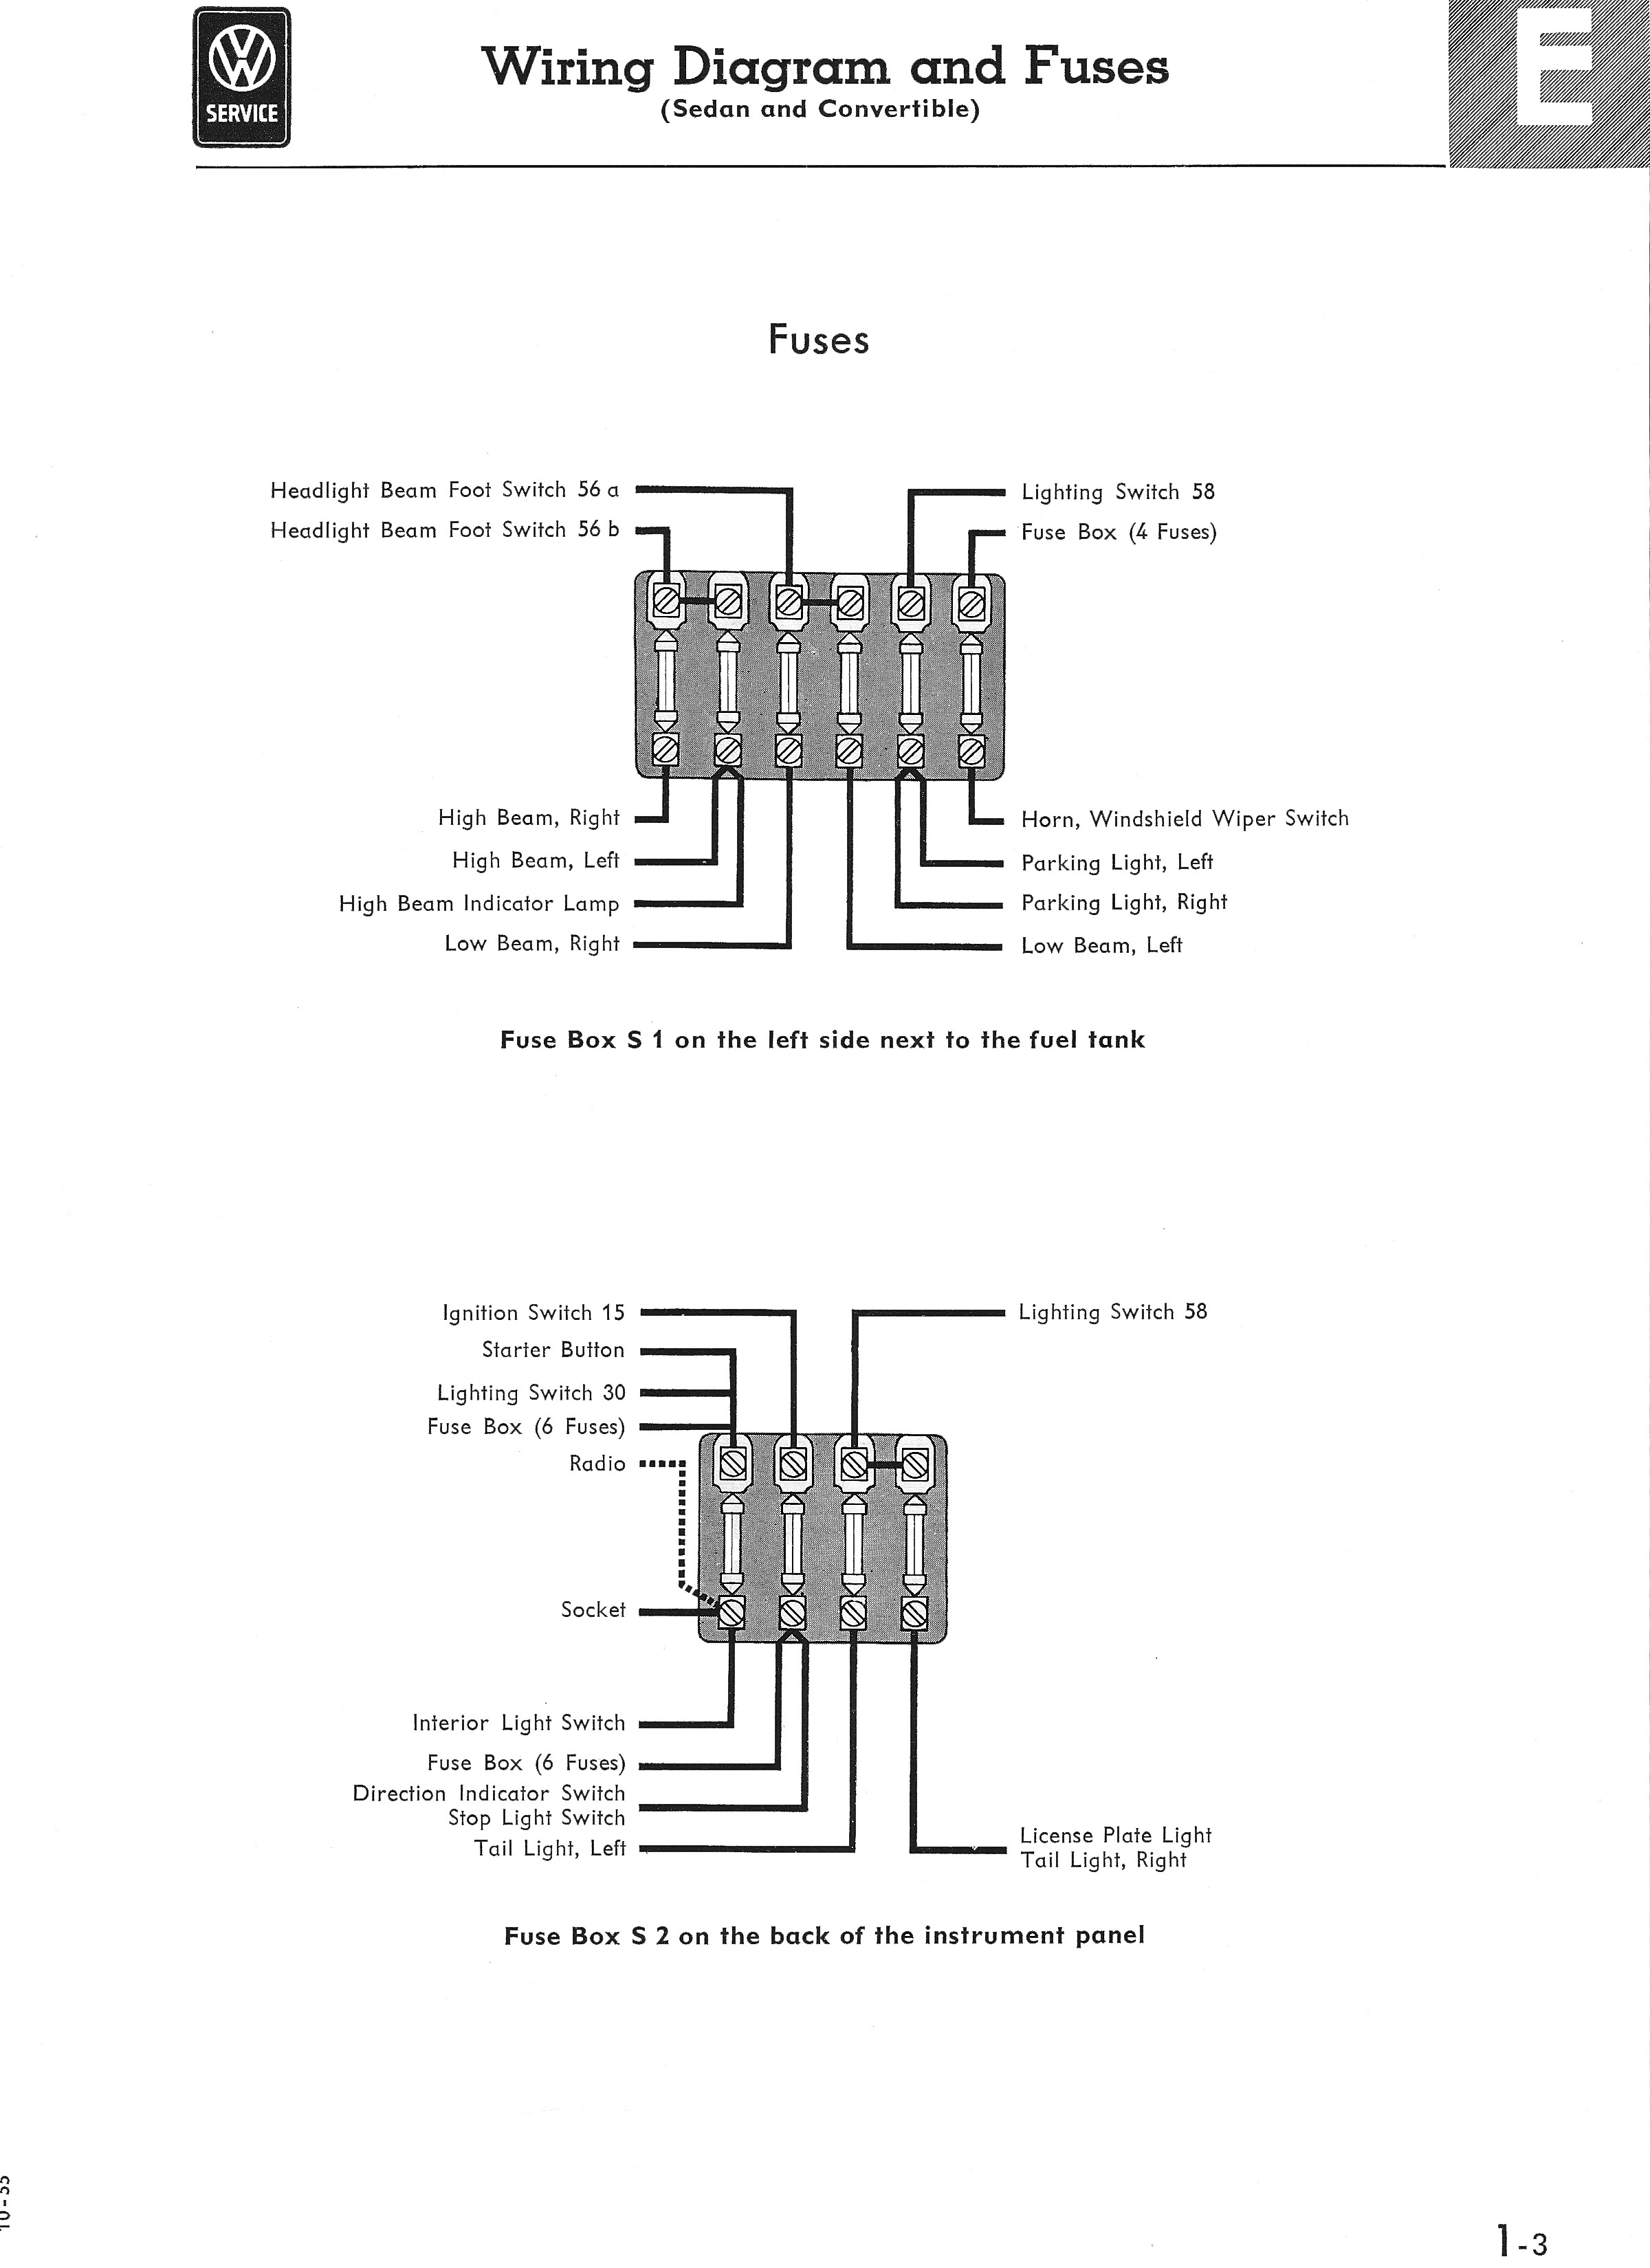 2003 Porsche Fuse Box Diagram Wiring Library